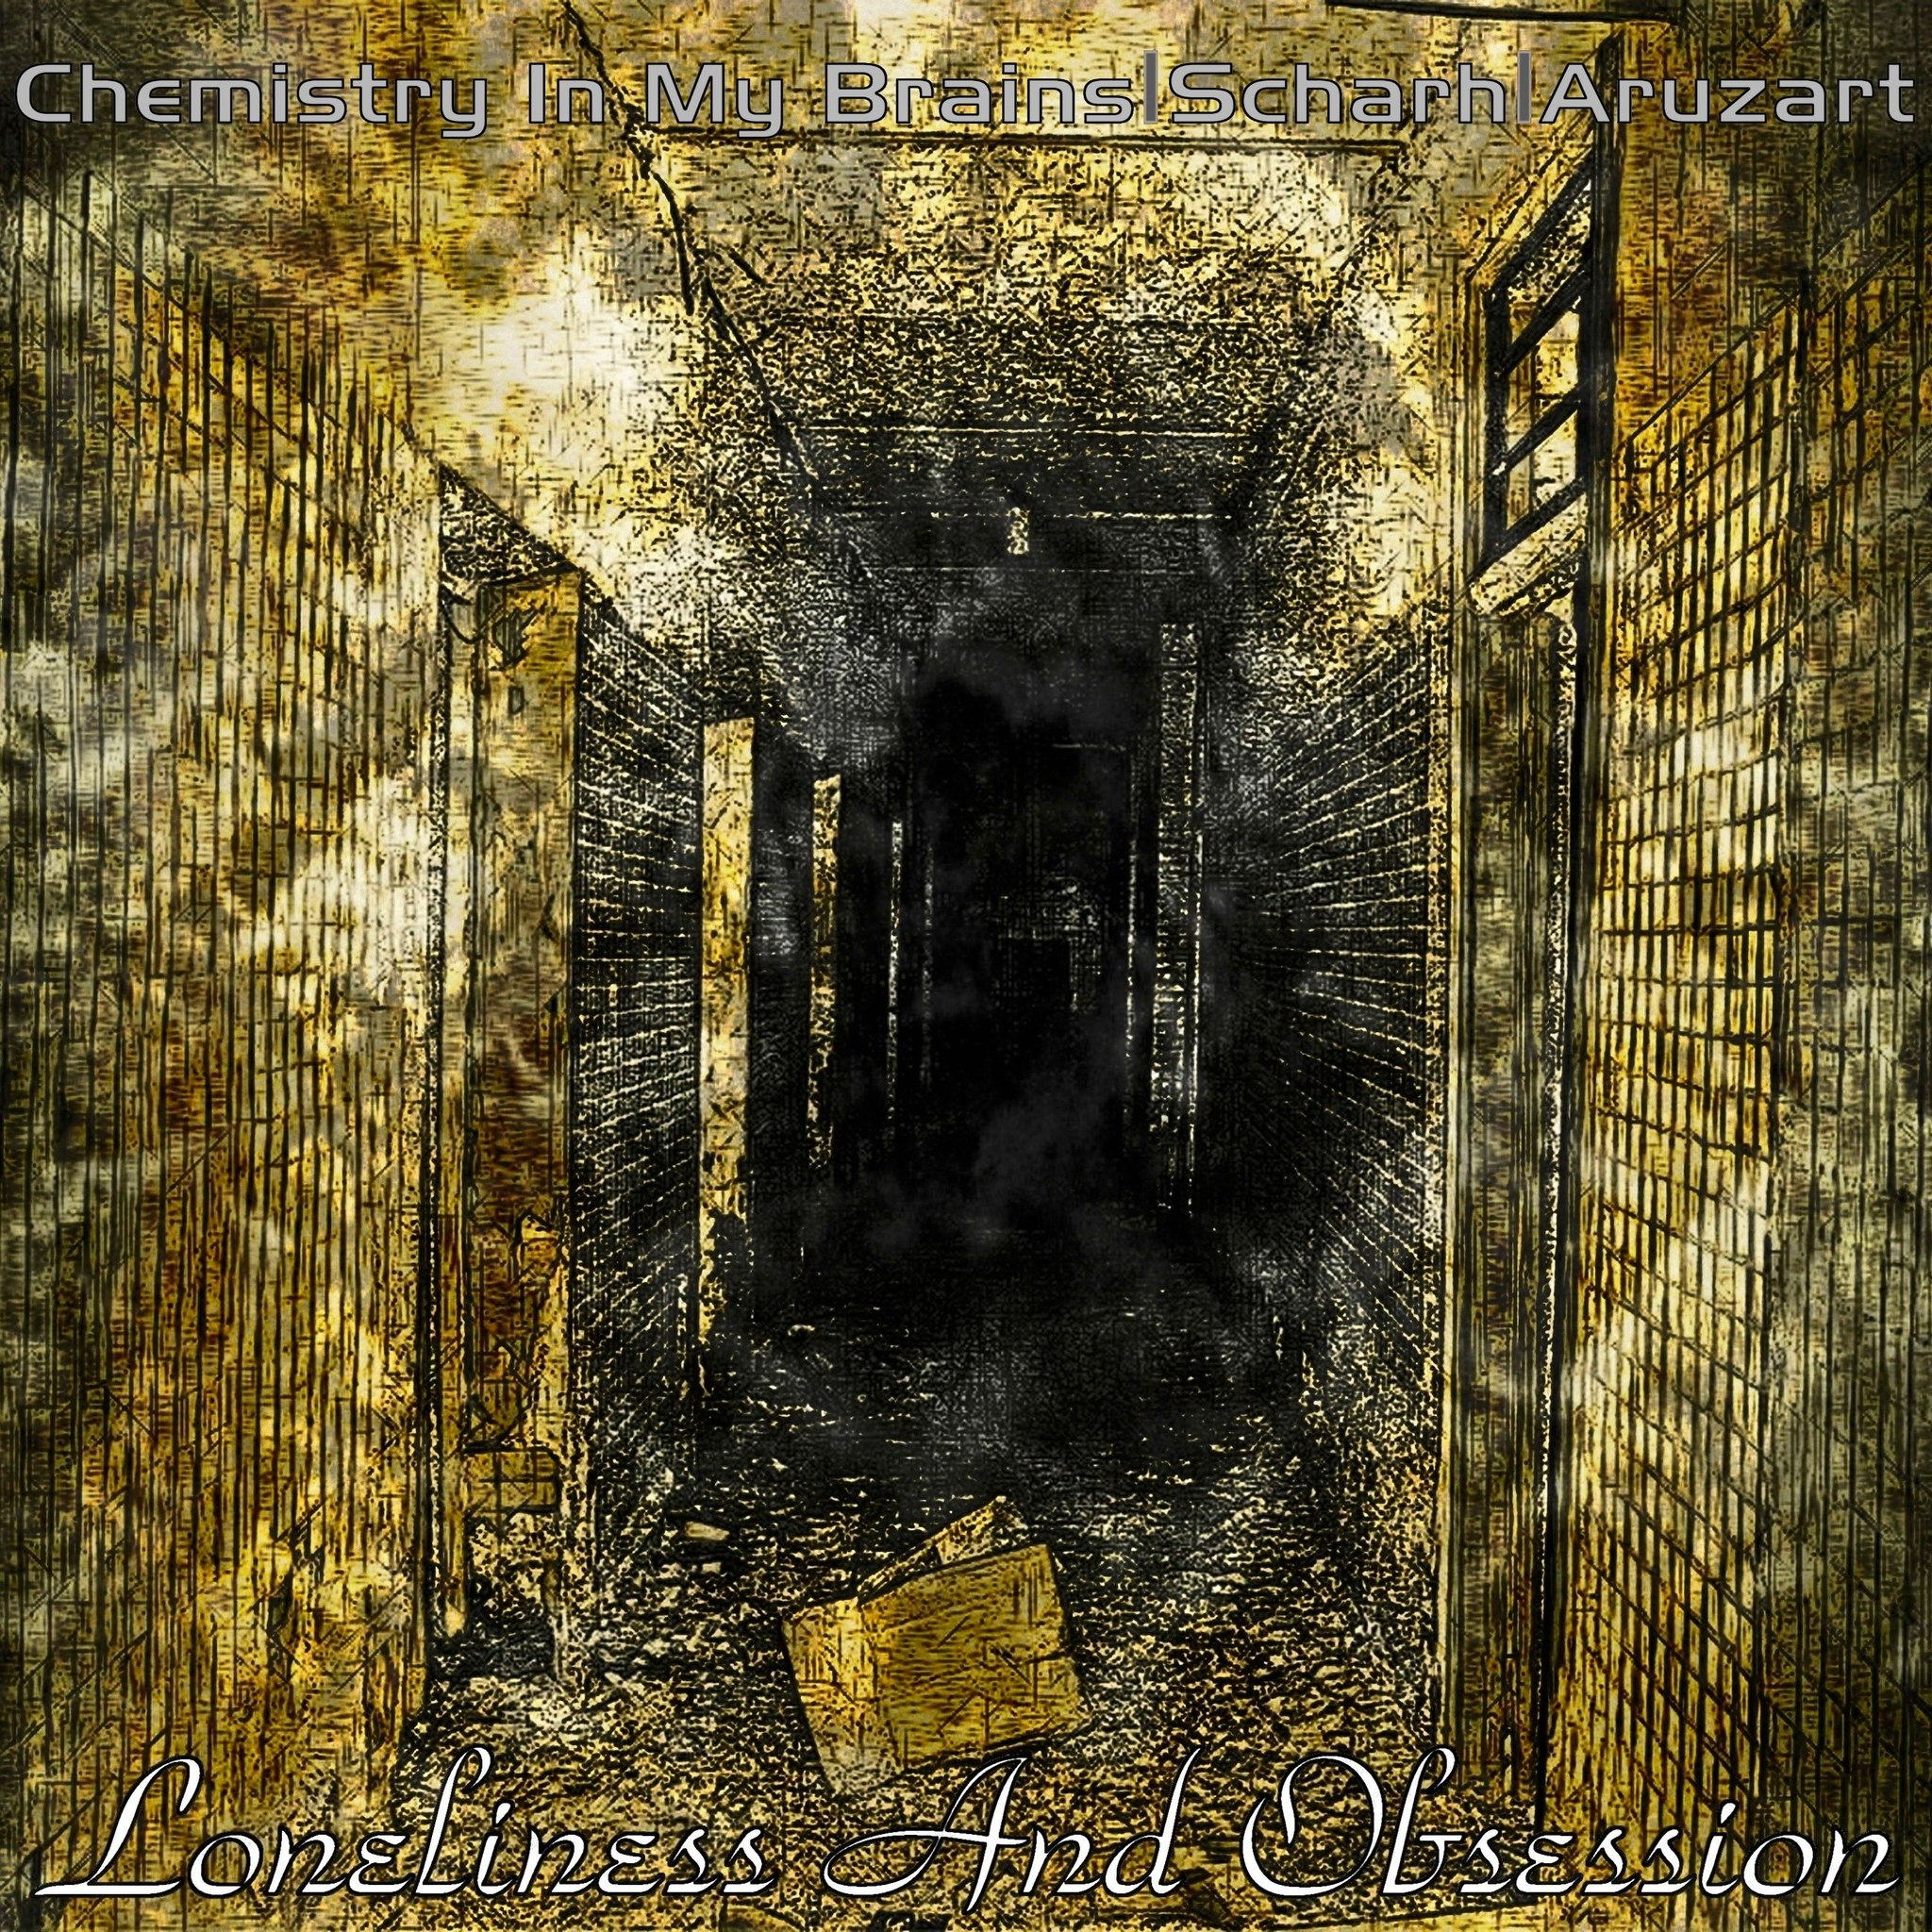 Unnamed & Aruzart & ChemistryInMyBrains - Loneliness and Obsession (Split) (2014)